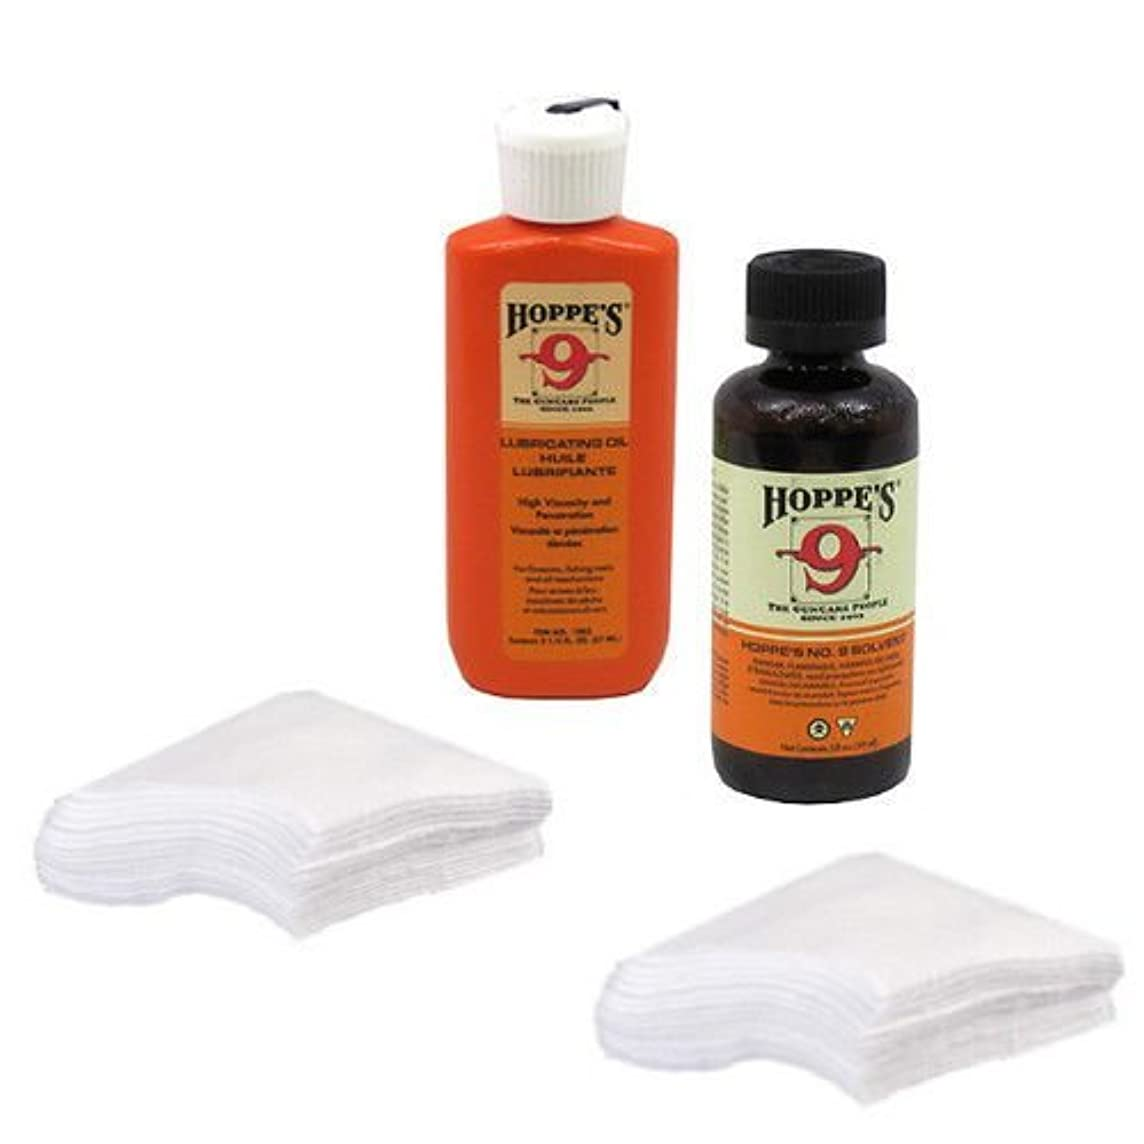 Gun Bore Cleaner and Lubricating Oil with 40 Patches for .38, 9mm, .40, .44 and .45 Caliber Handguns / Pistols Made in USA